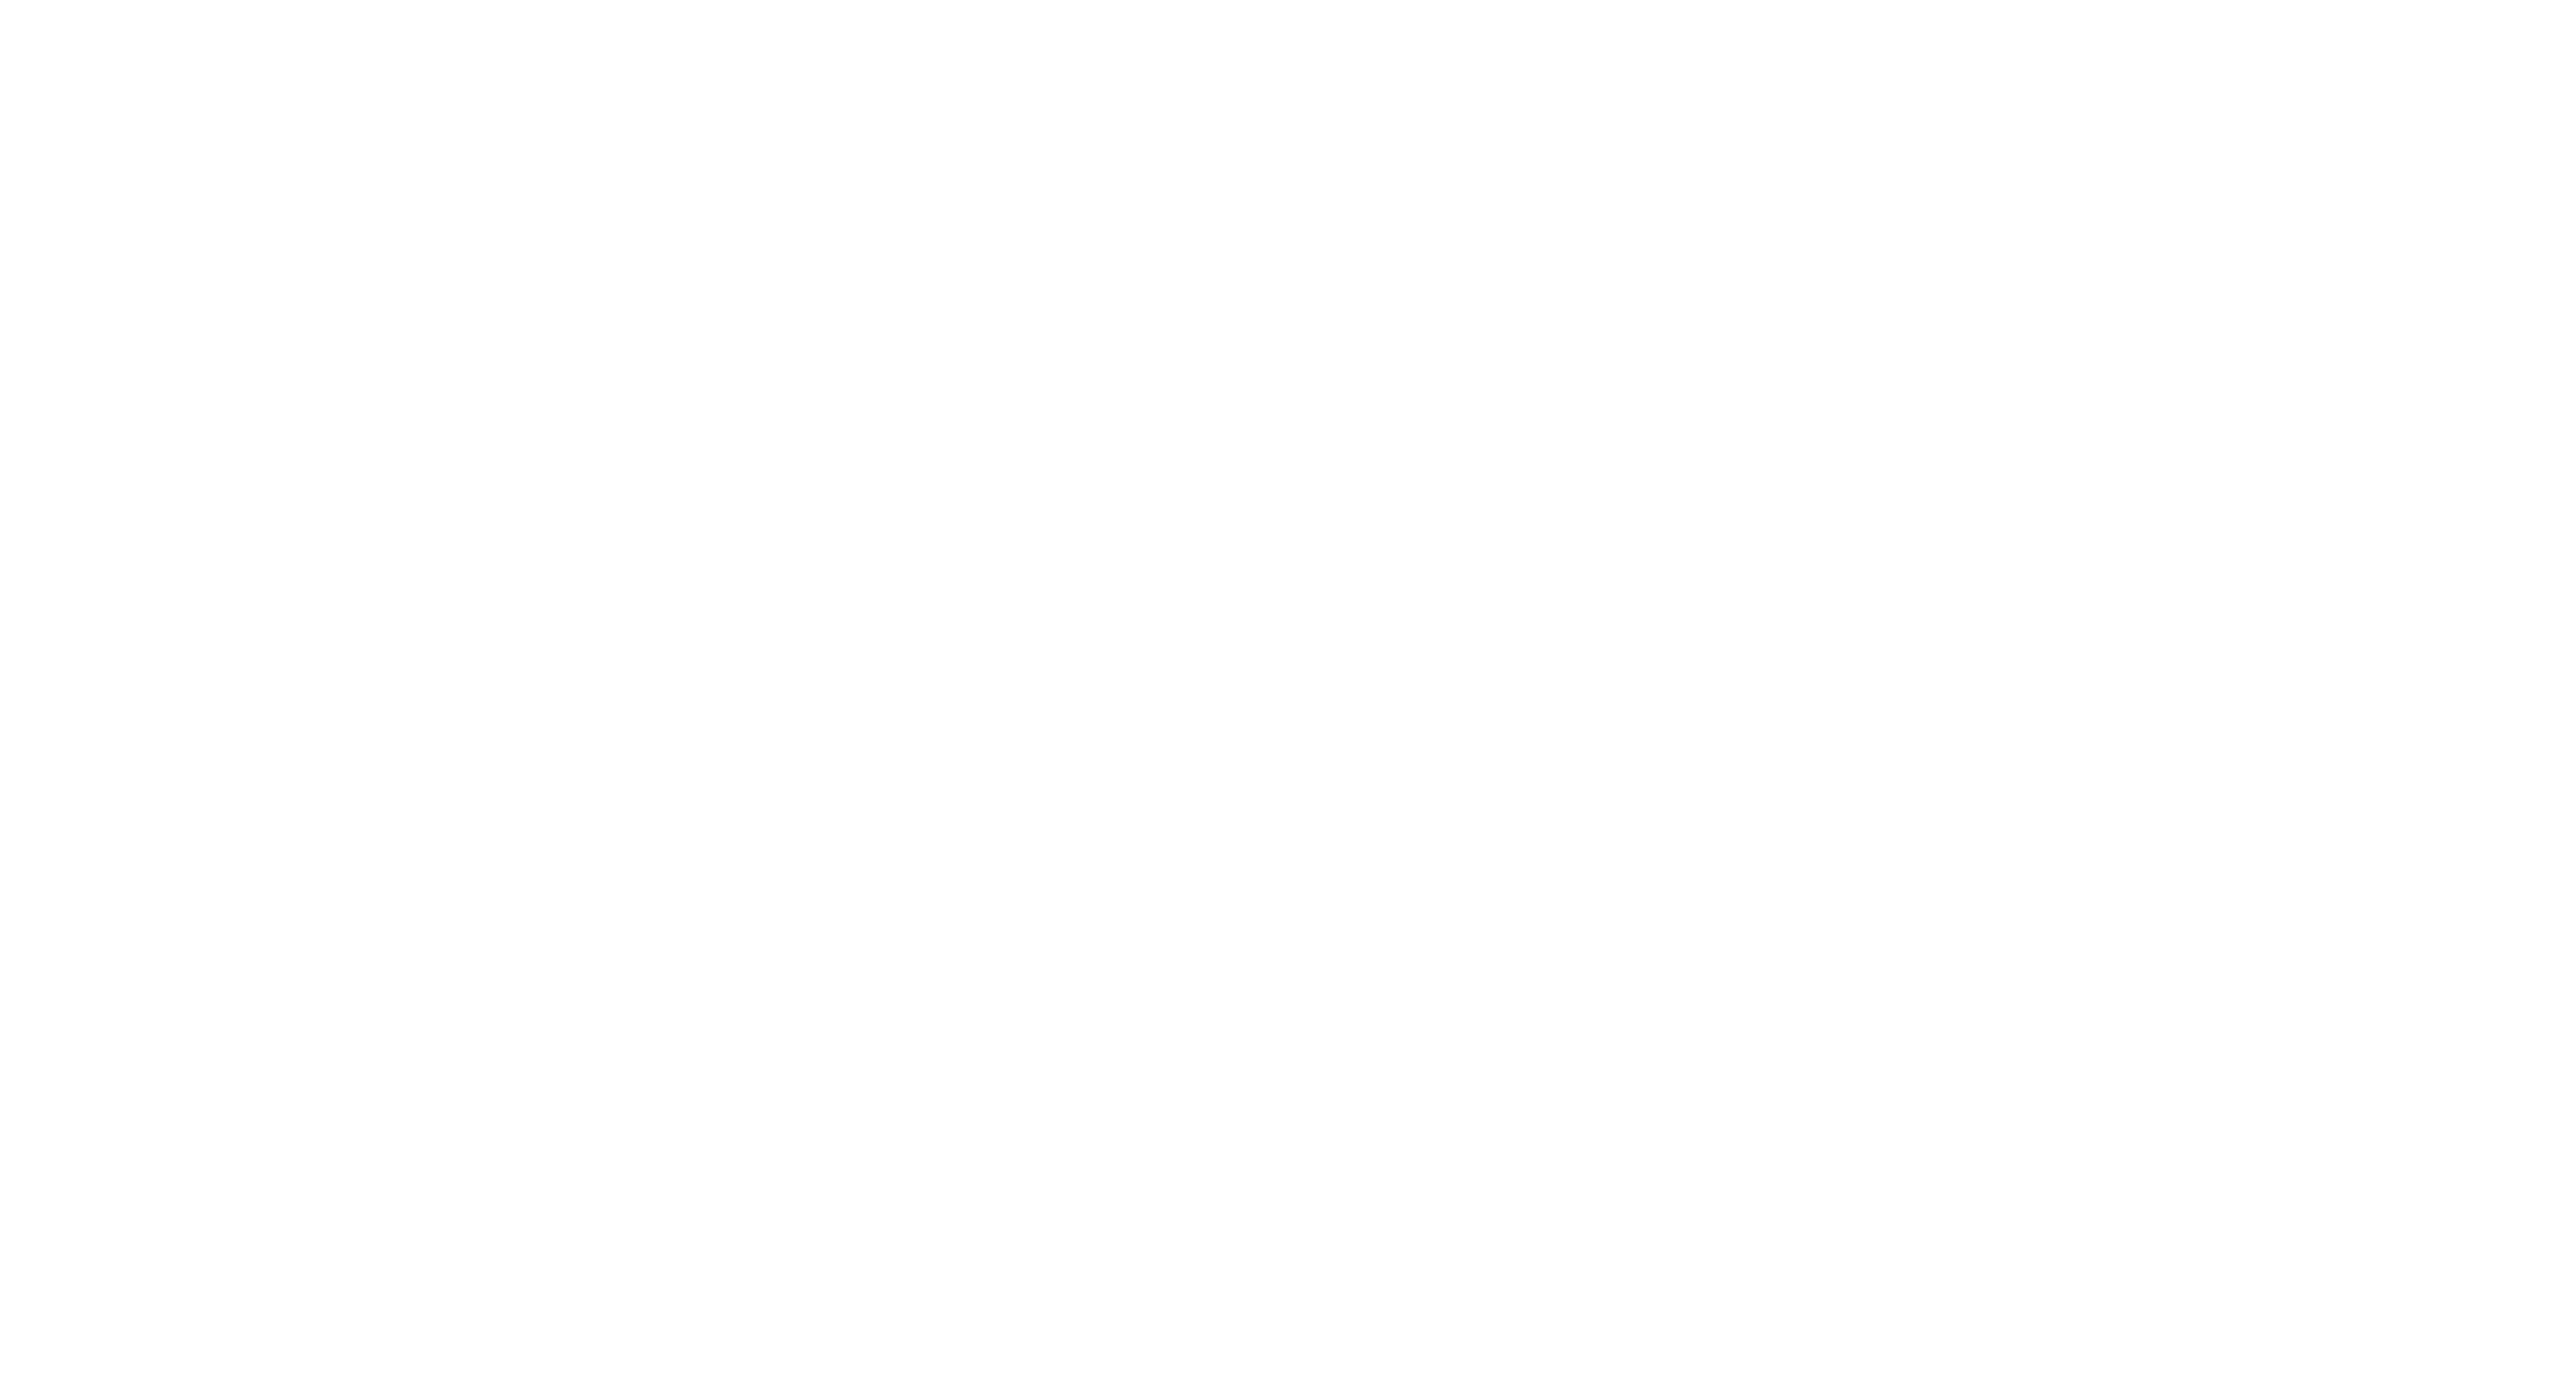 Farabola - Photo Art Gallery